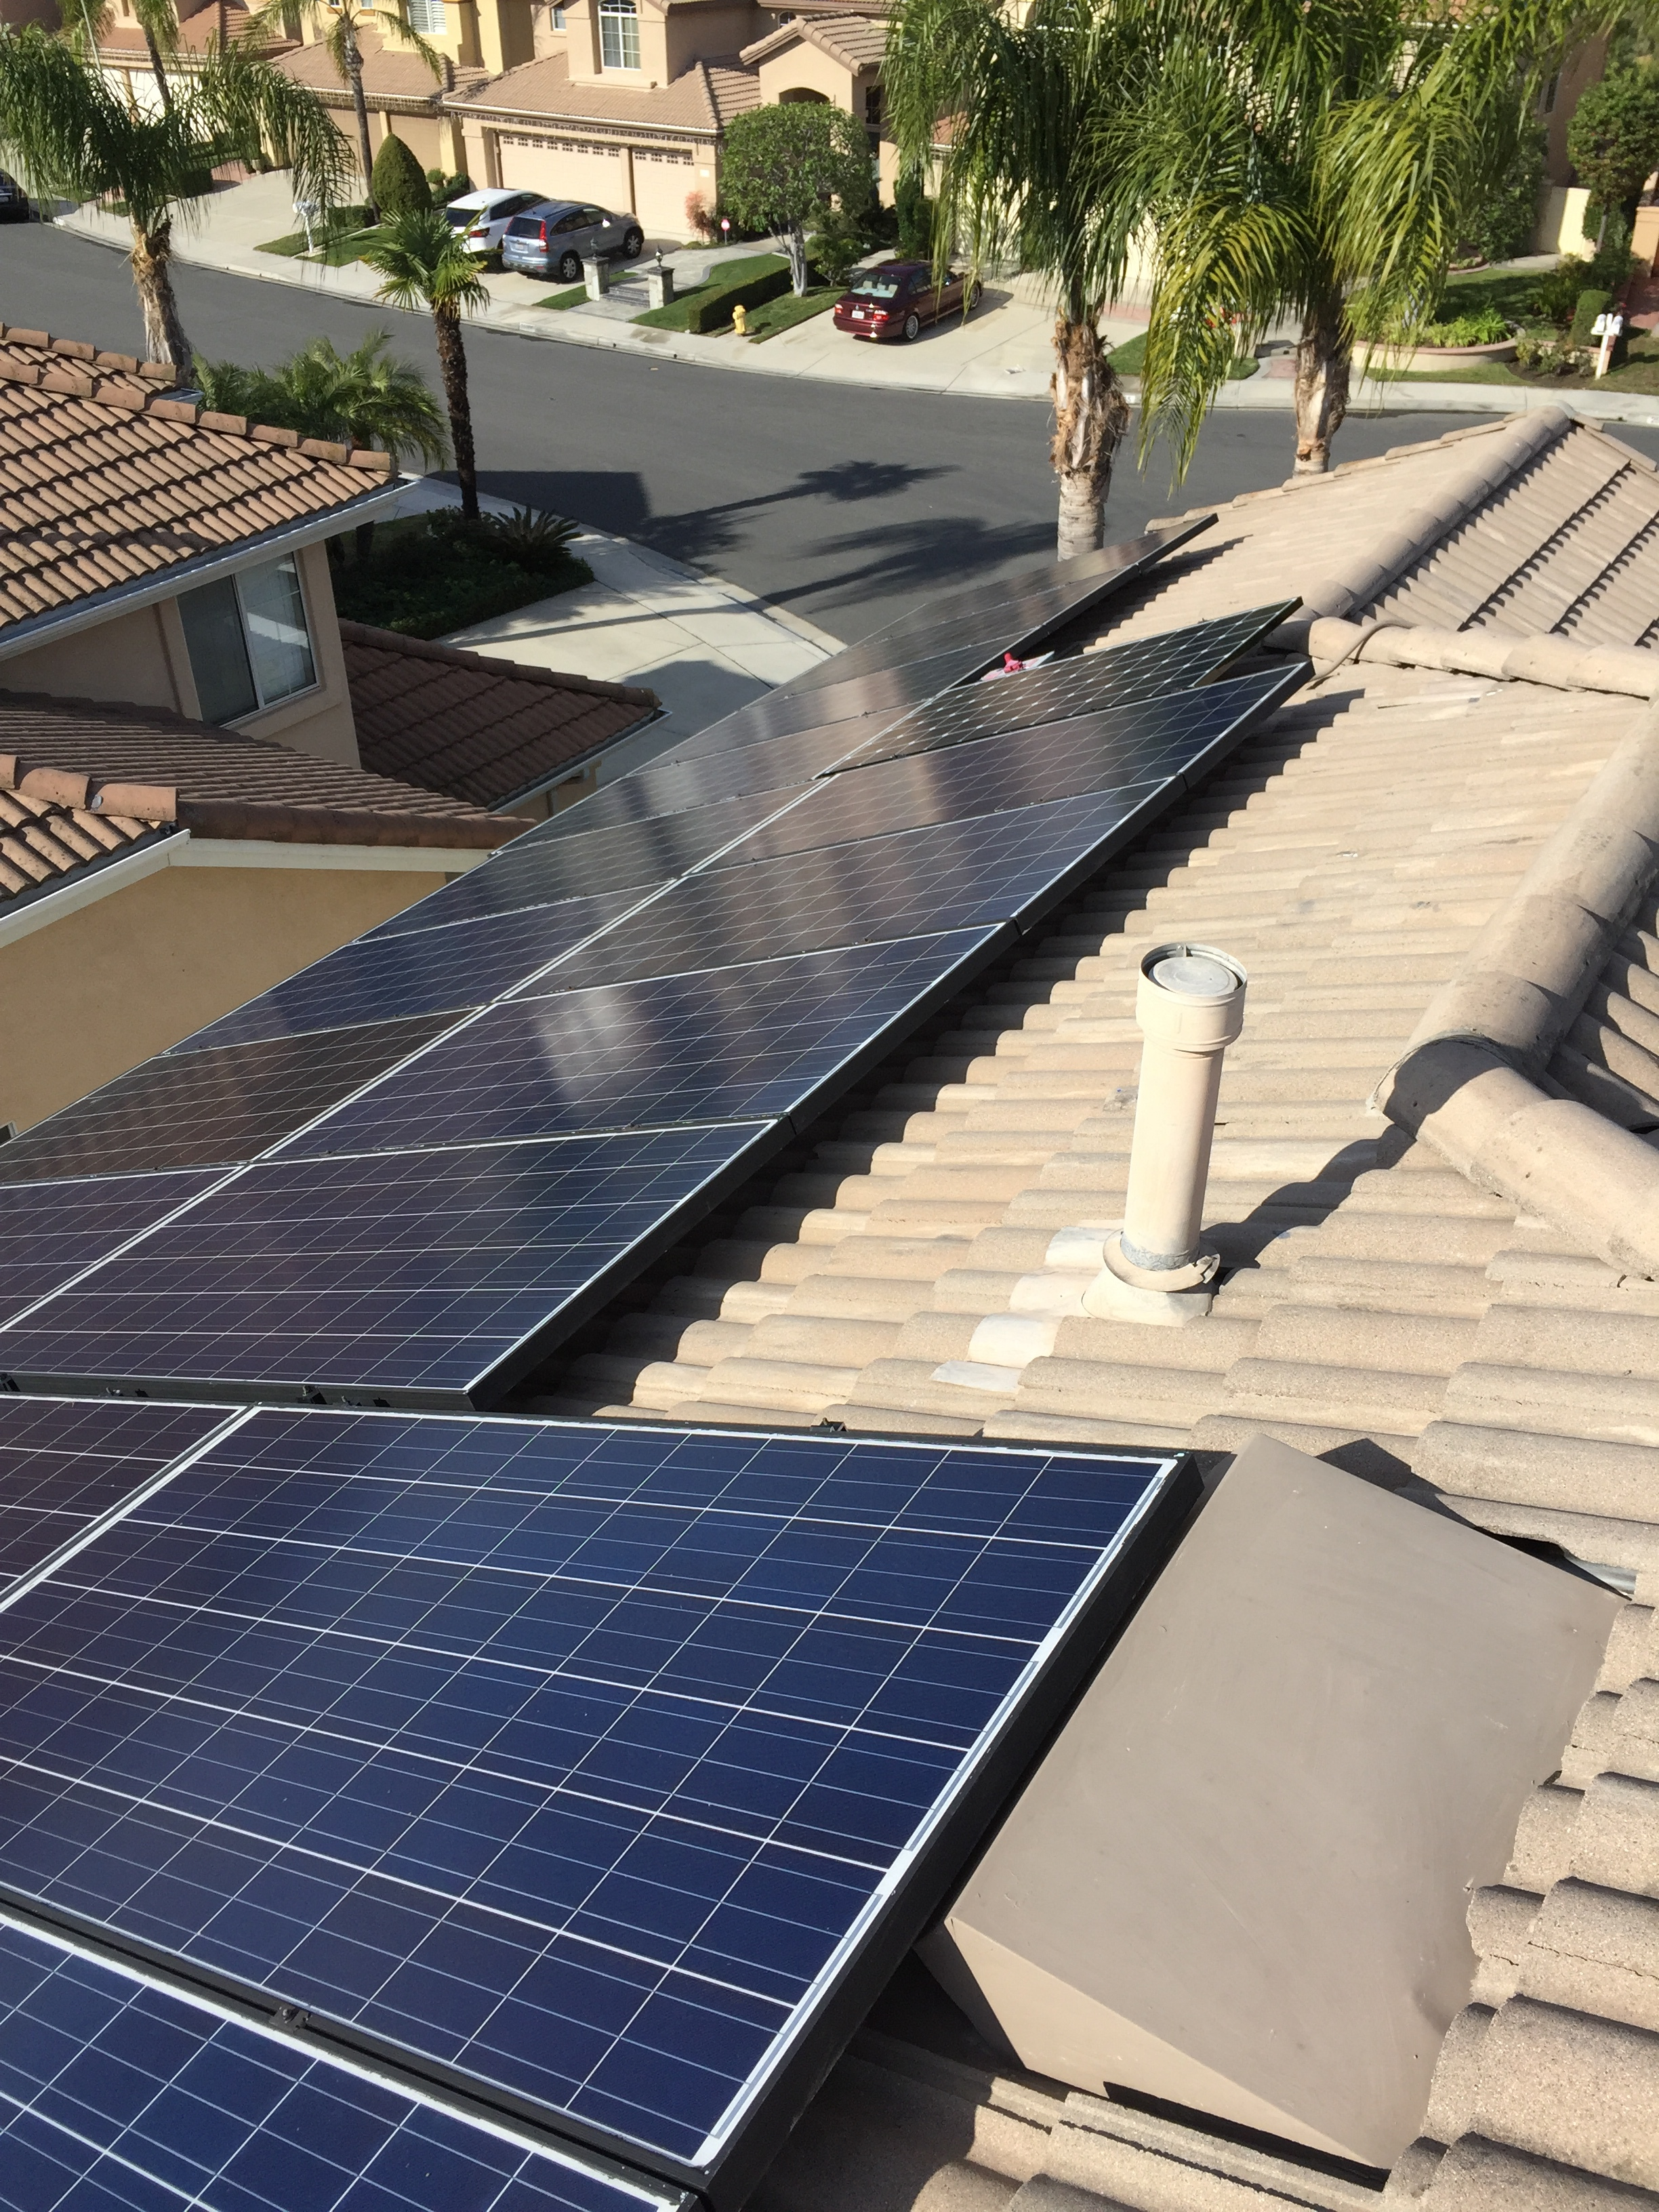 MISSION VIEJO, CA - 27 PV modules total to 7.9 kWDC in Mission Viejo, CA.  The system was commissioned in 2015.  The system is estimated to save the home owner over $120,000 in electricity bill over 25 years.